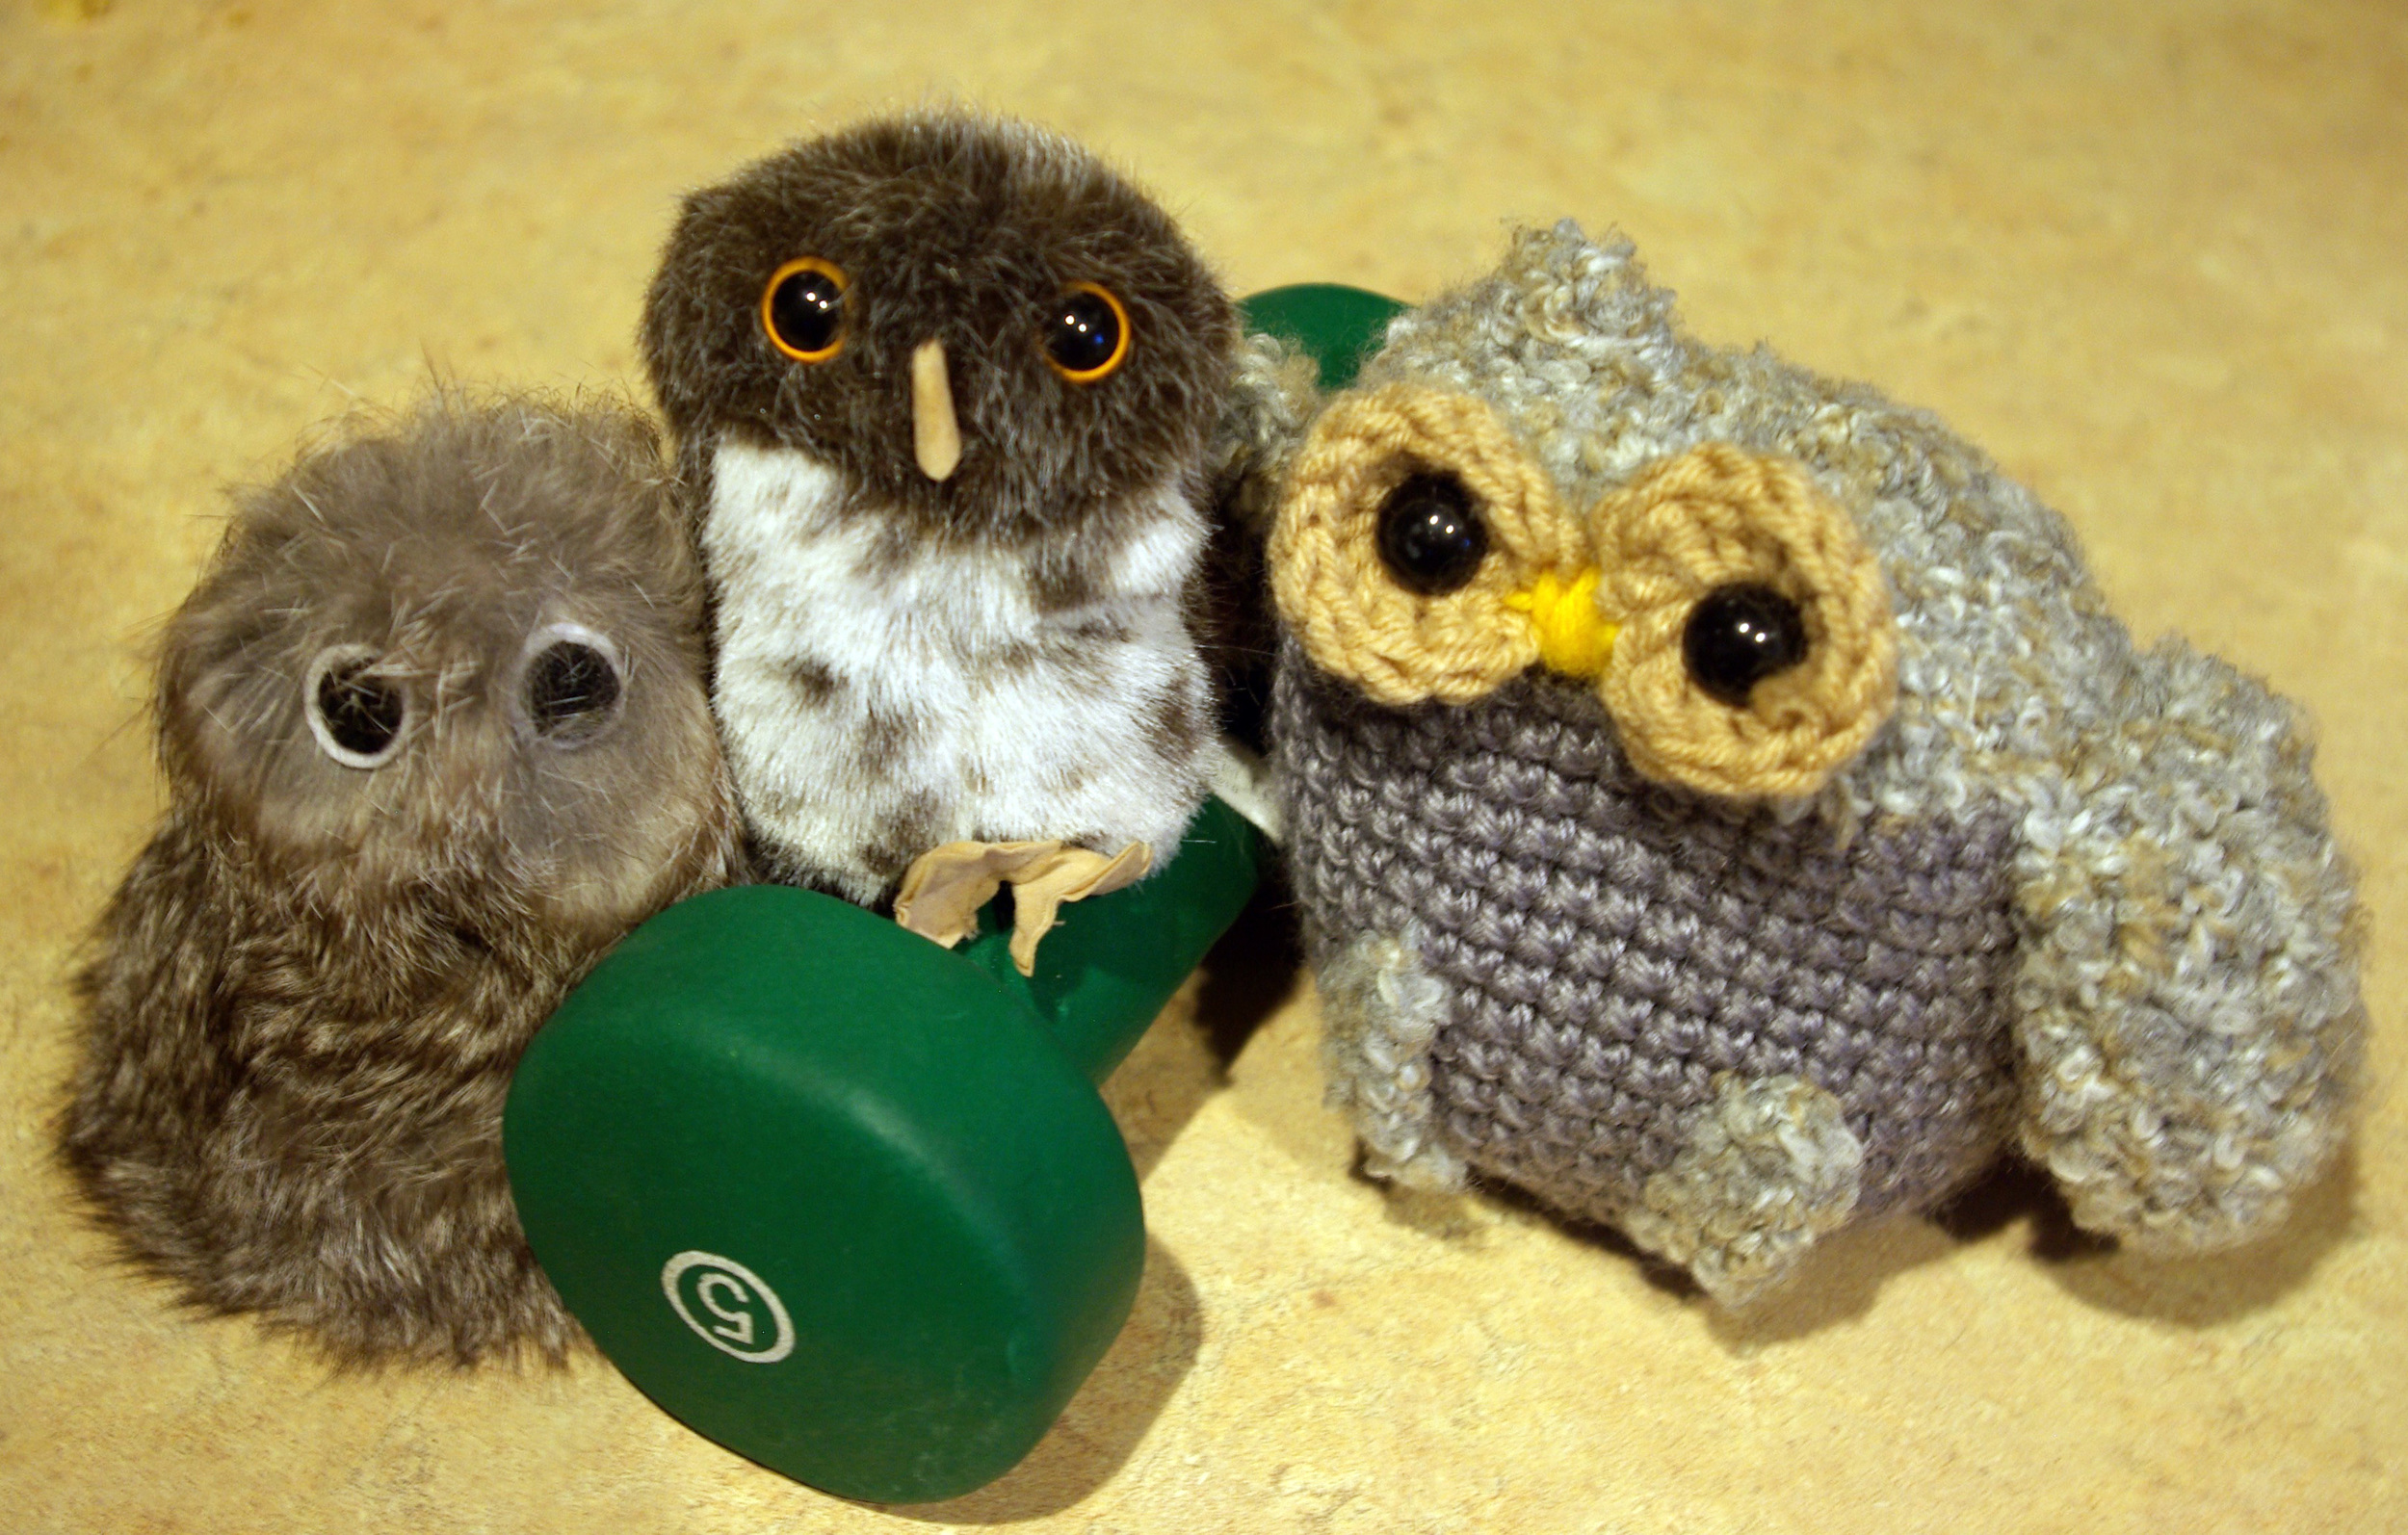 Some local night owls pumping iron.